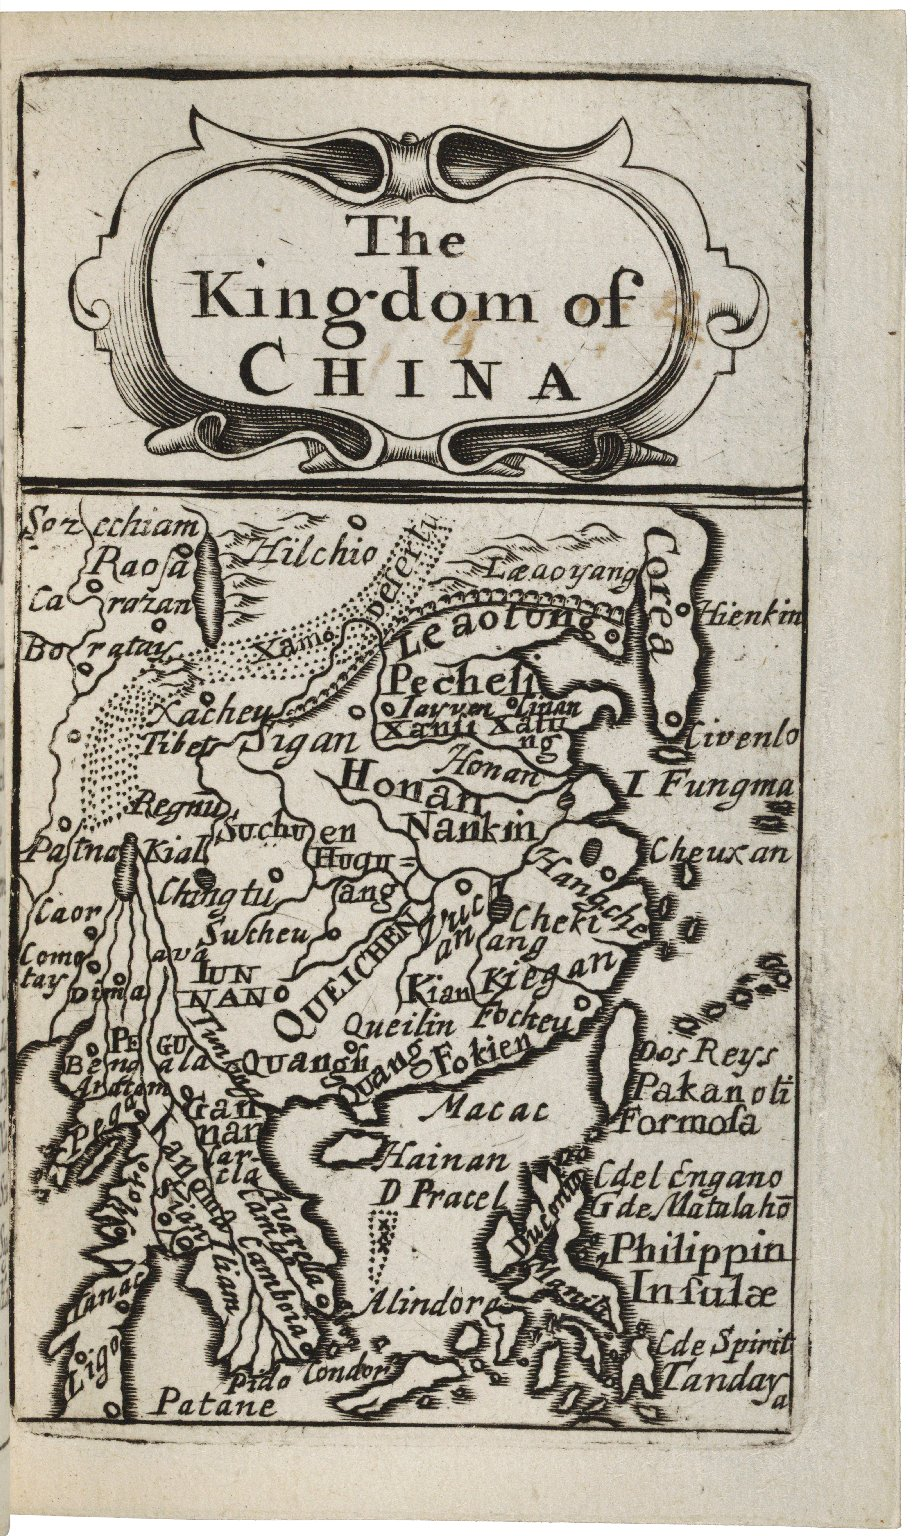 Atlas minimus or A book of geography shewing all the empires, monarchies kingdomes, regions dominions principalities and countries, in the whole world ...